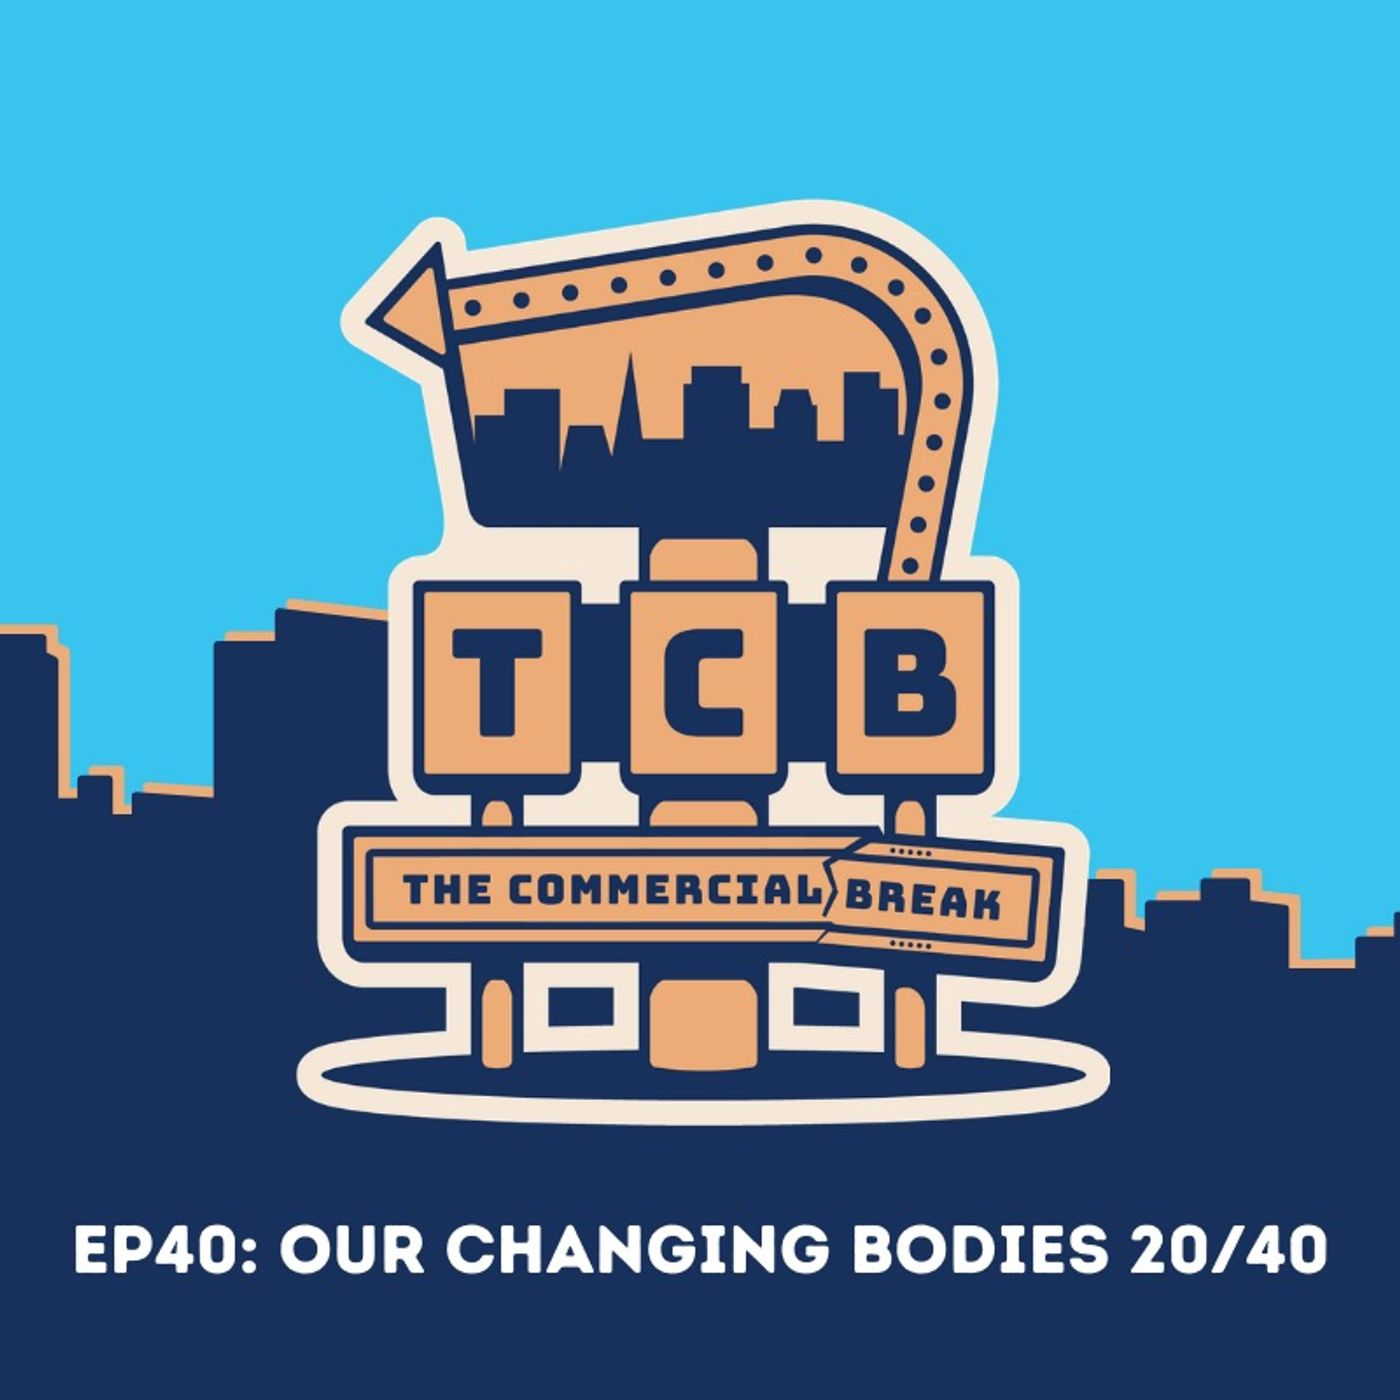 S2-EP40: Our Changing Bodies 20/40